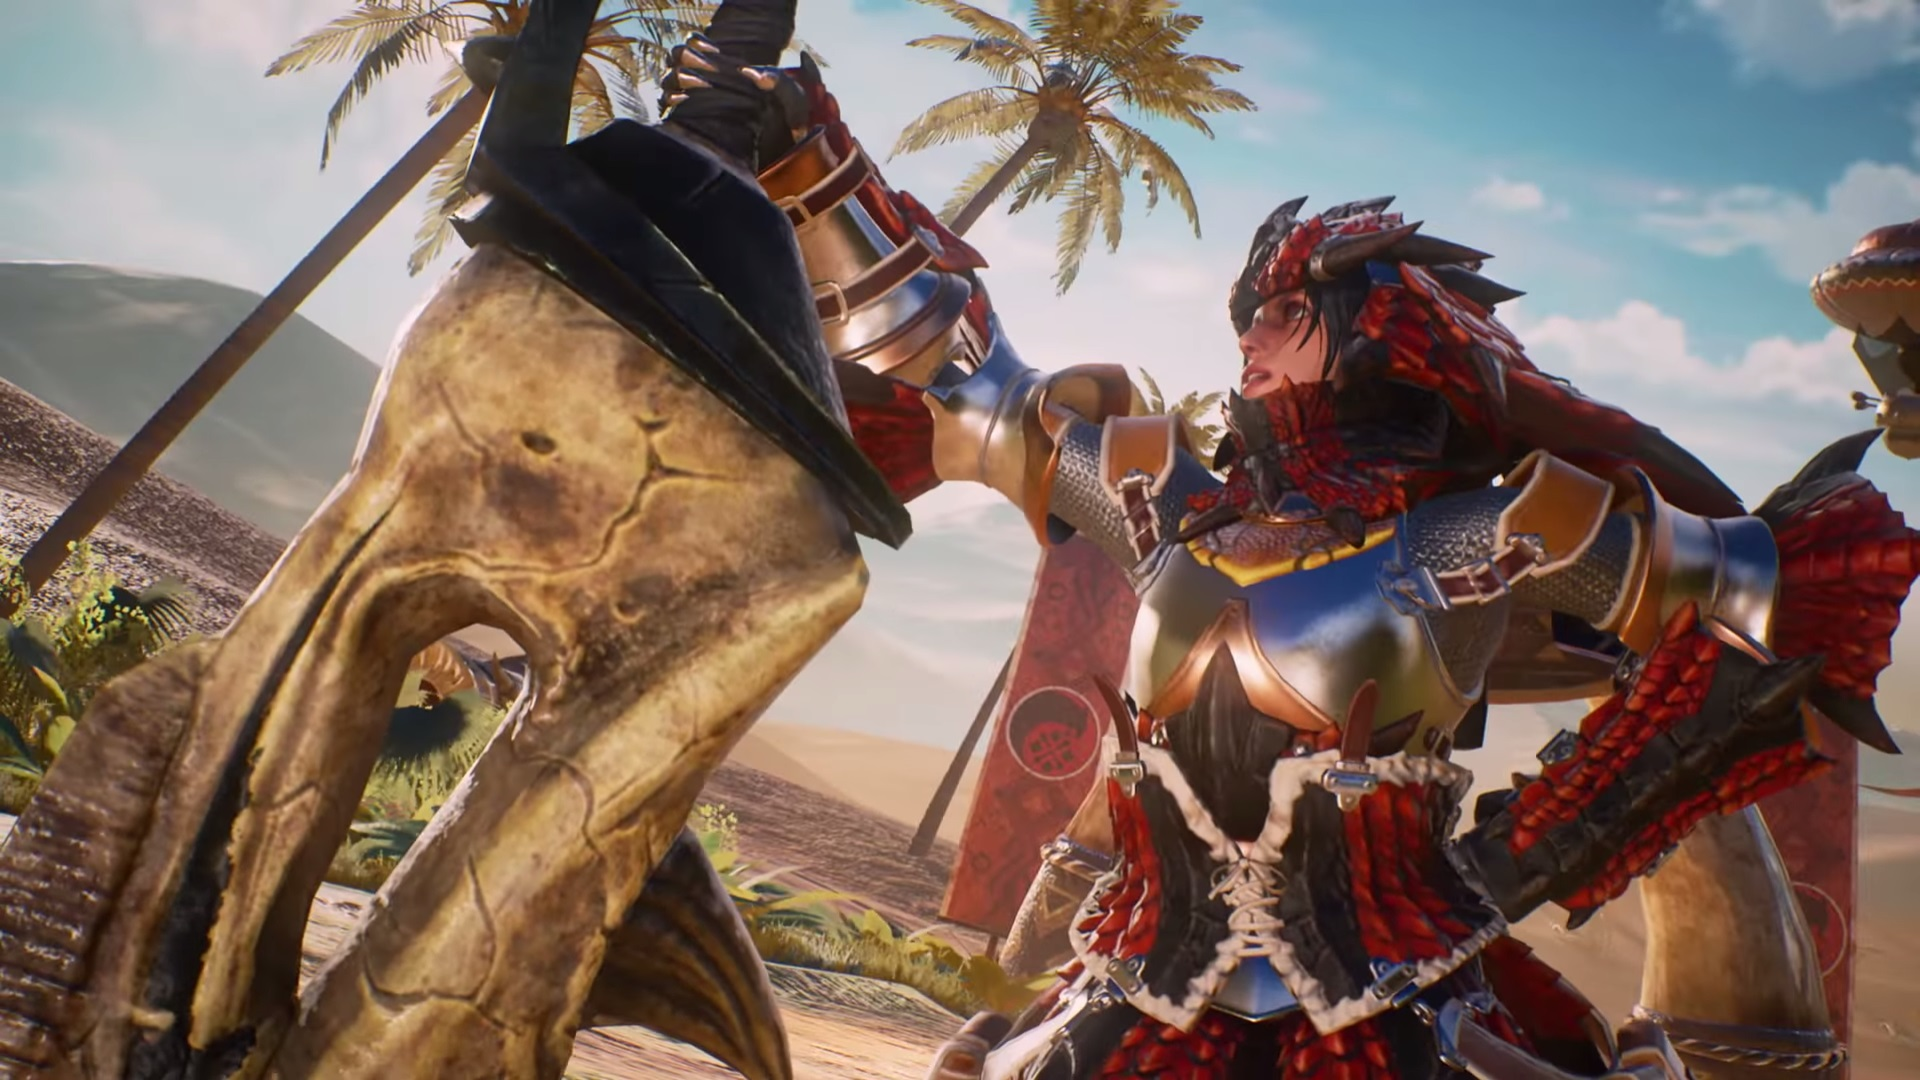 monster-hunter-is-speaking-in-the-latest-marvel-vs-capcom-infinite-trailerand-its-weird-social.jpg